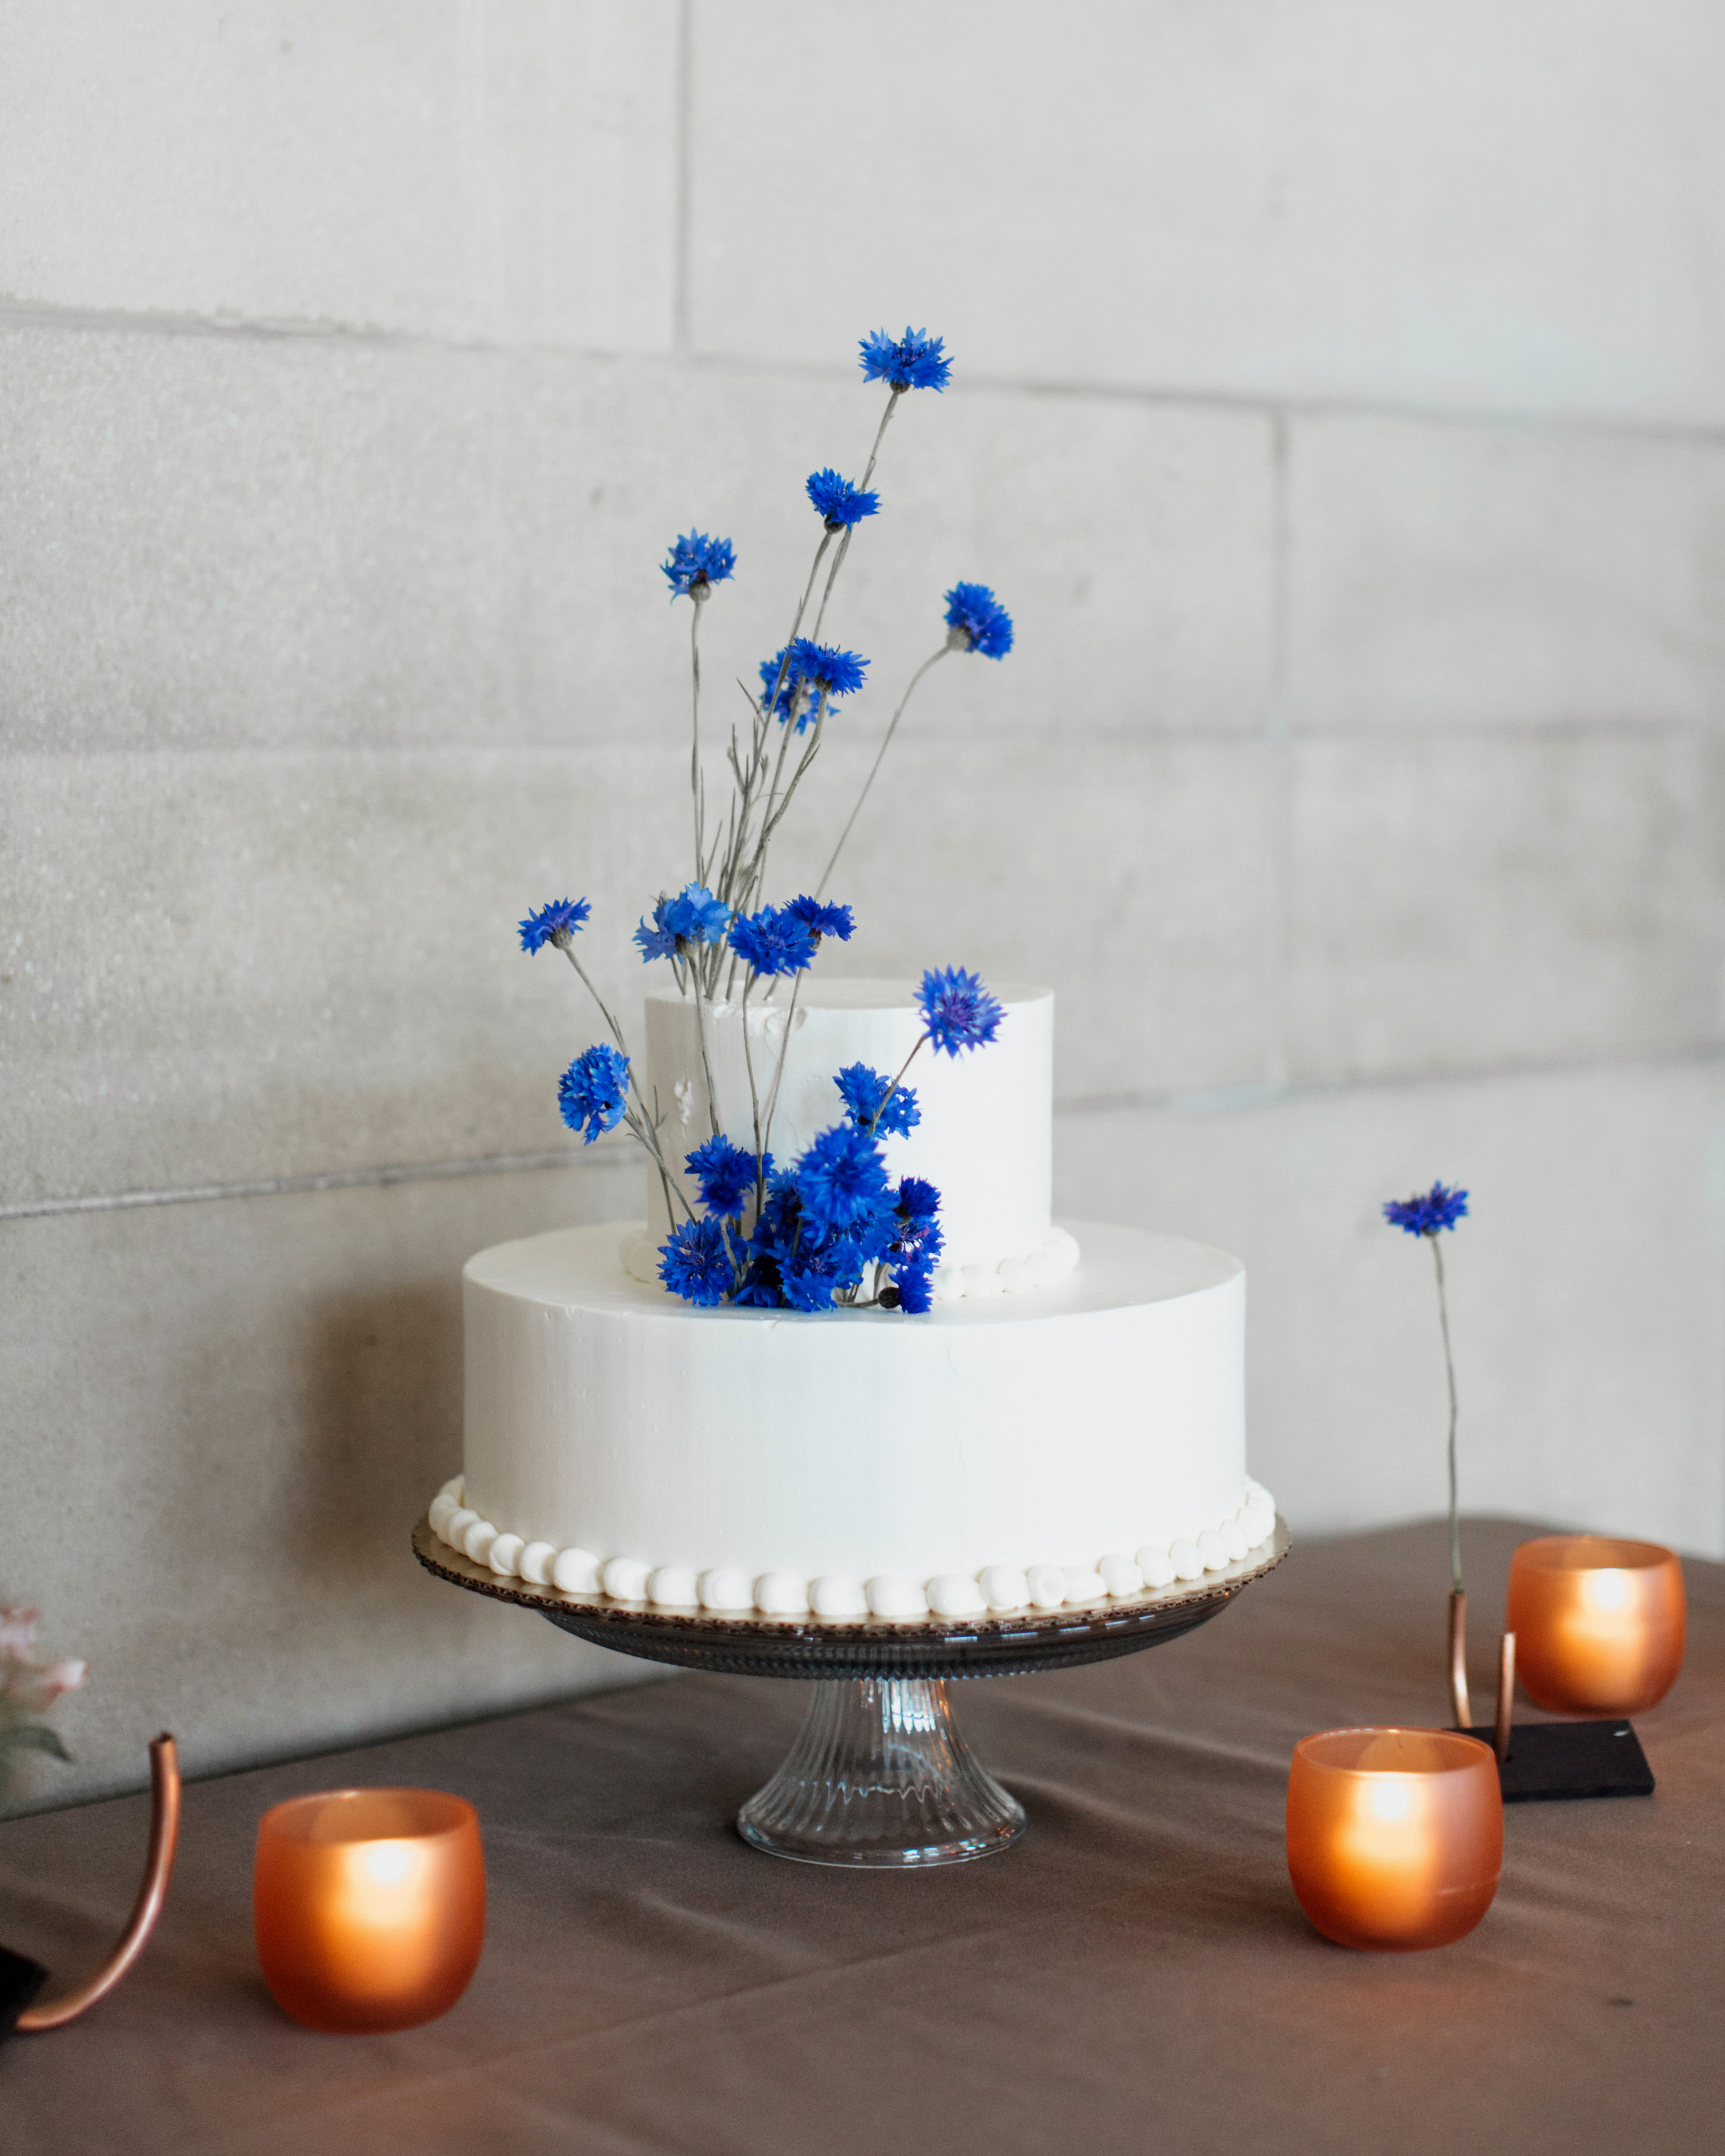 madison kyle wedding cake blue with candles